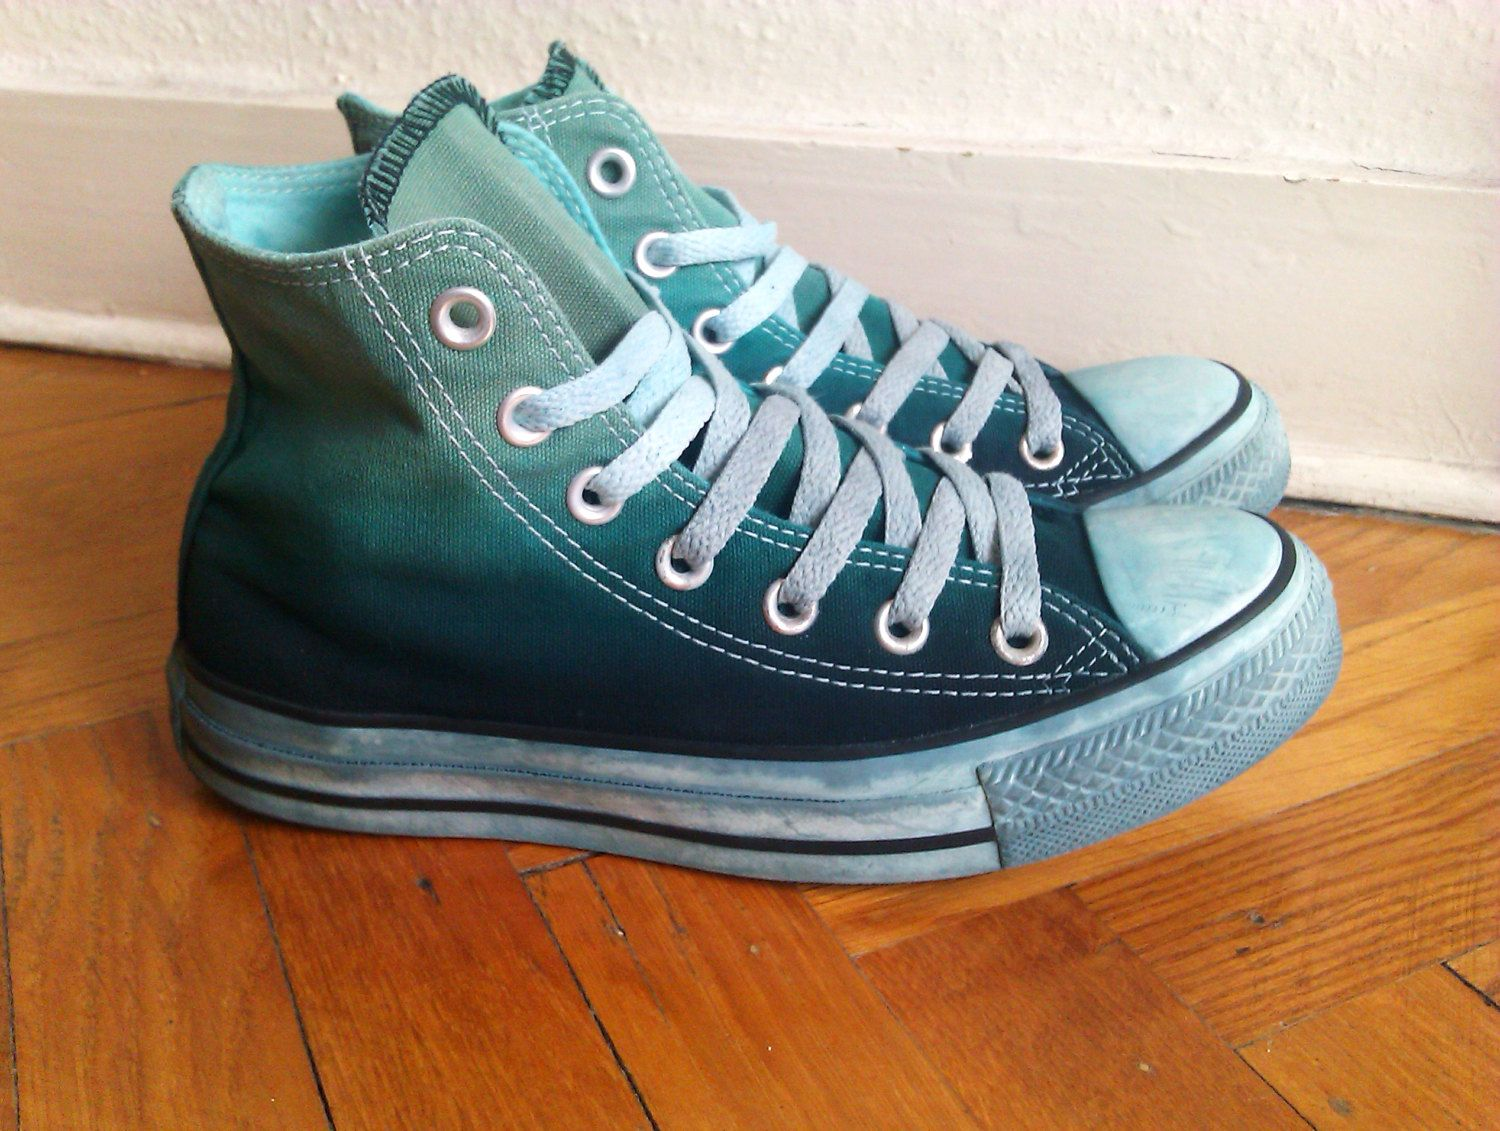 03fc9c5aeeab5 Upcycled dip dye ombre Converse all stars chucks | Pumped up kicks ...